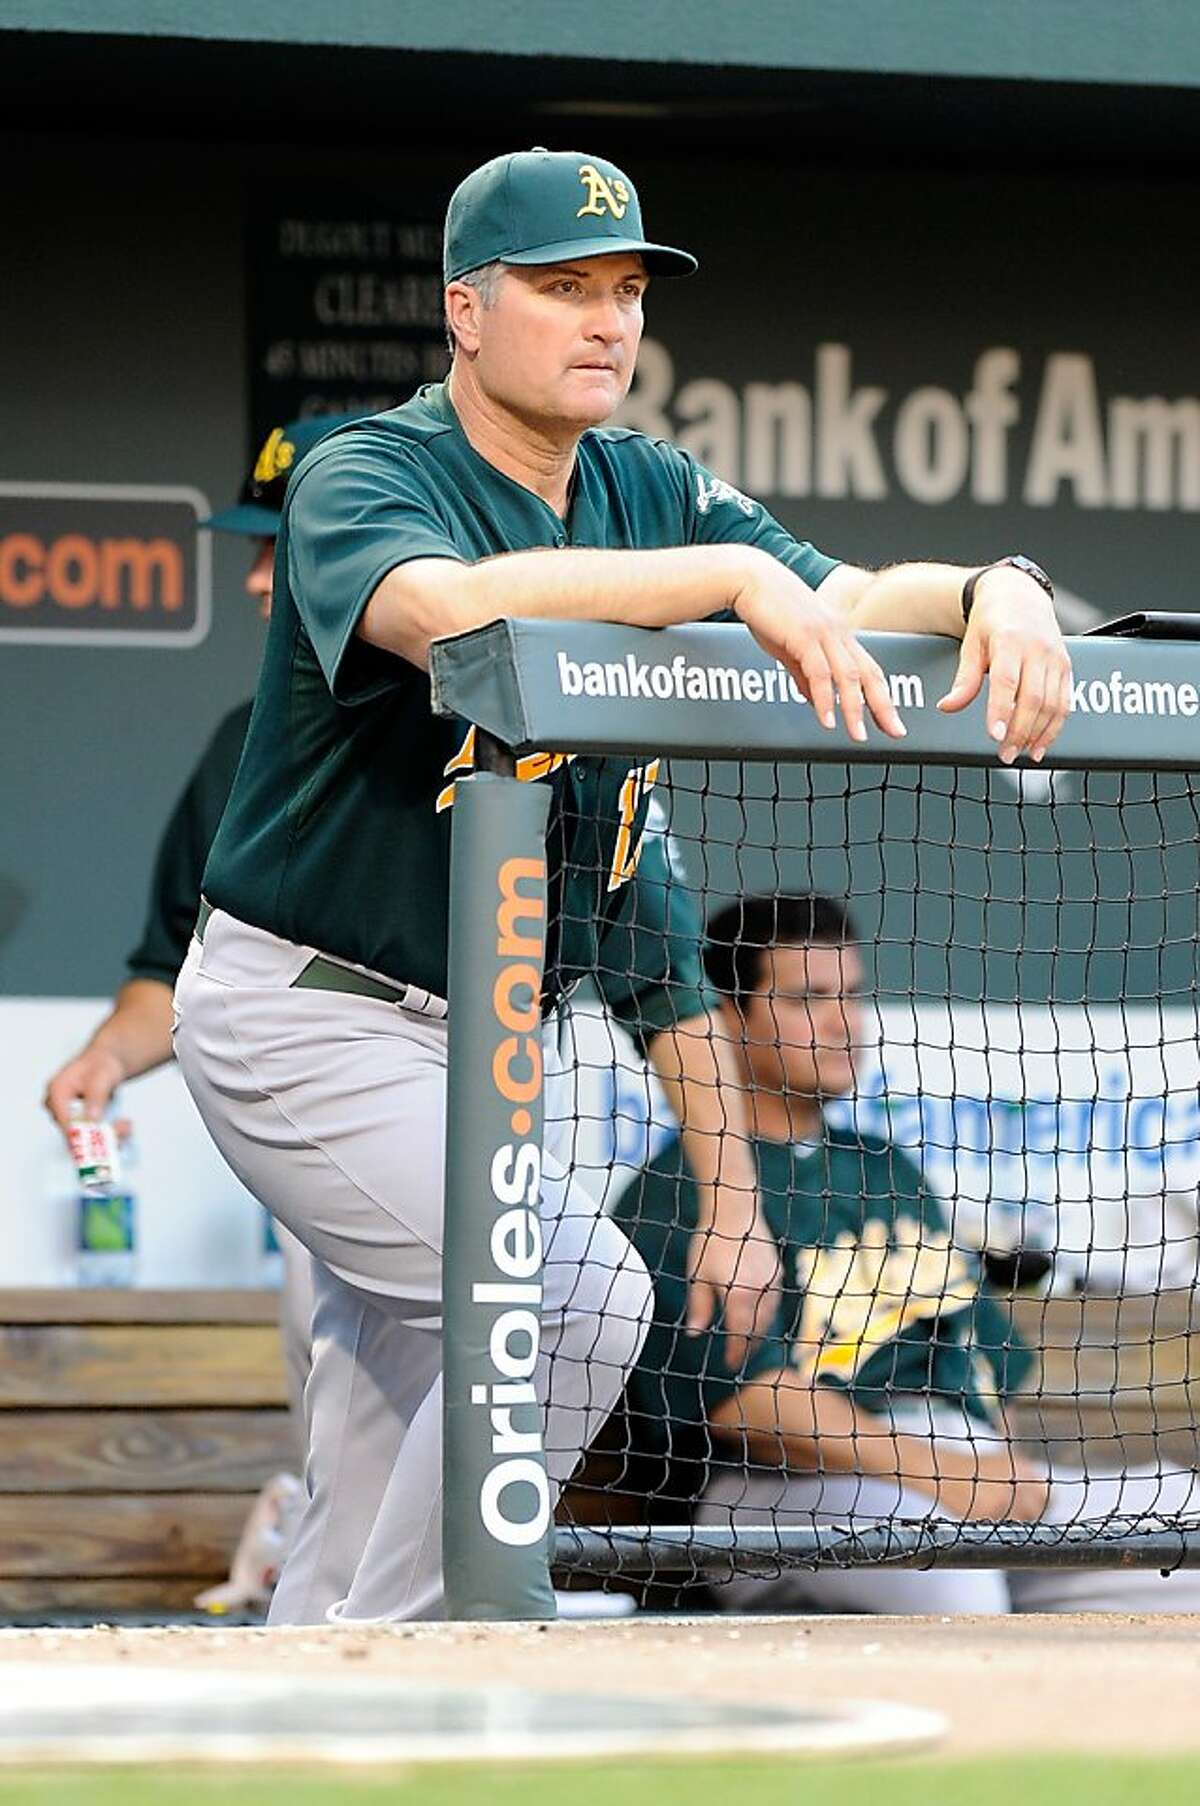 FILE - Manager Bob Geren #17 of the Oakland Athletics watches the game against the Baltimore Orioles at Oriole Park at Camden Yards on June 6, 2011 in Baltimore, Maryland.